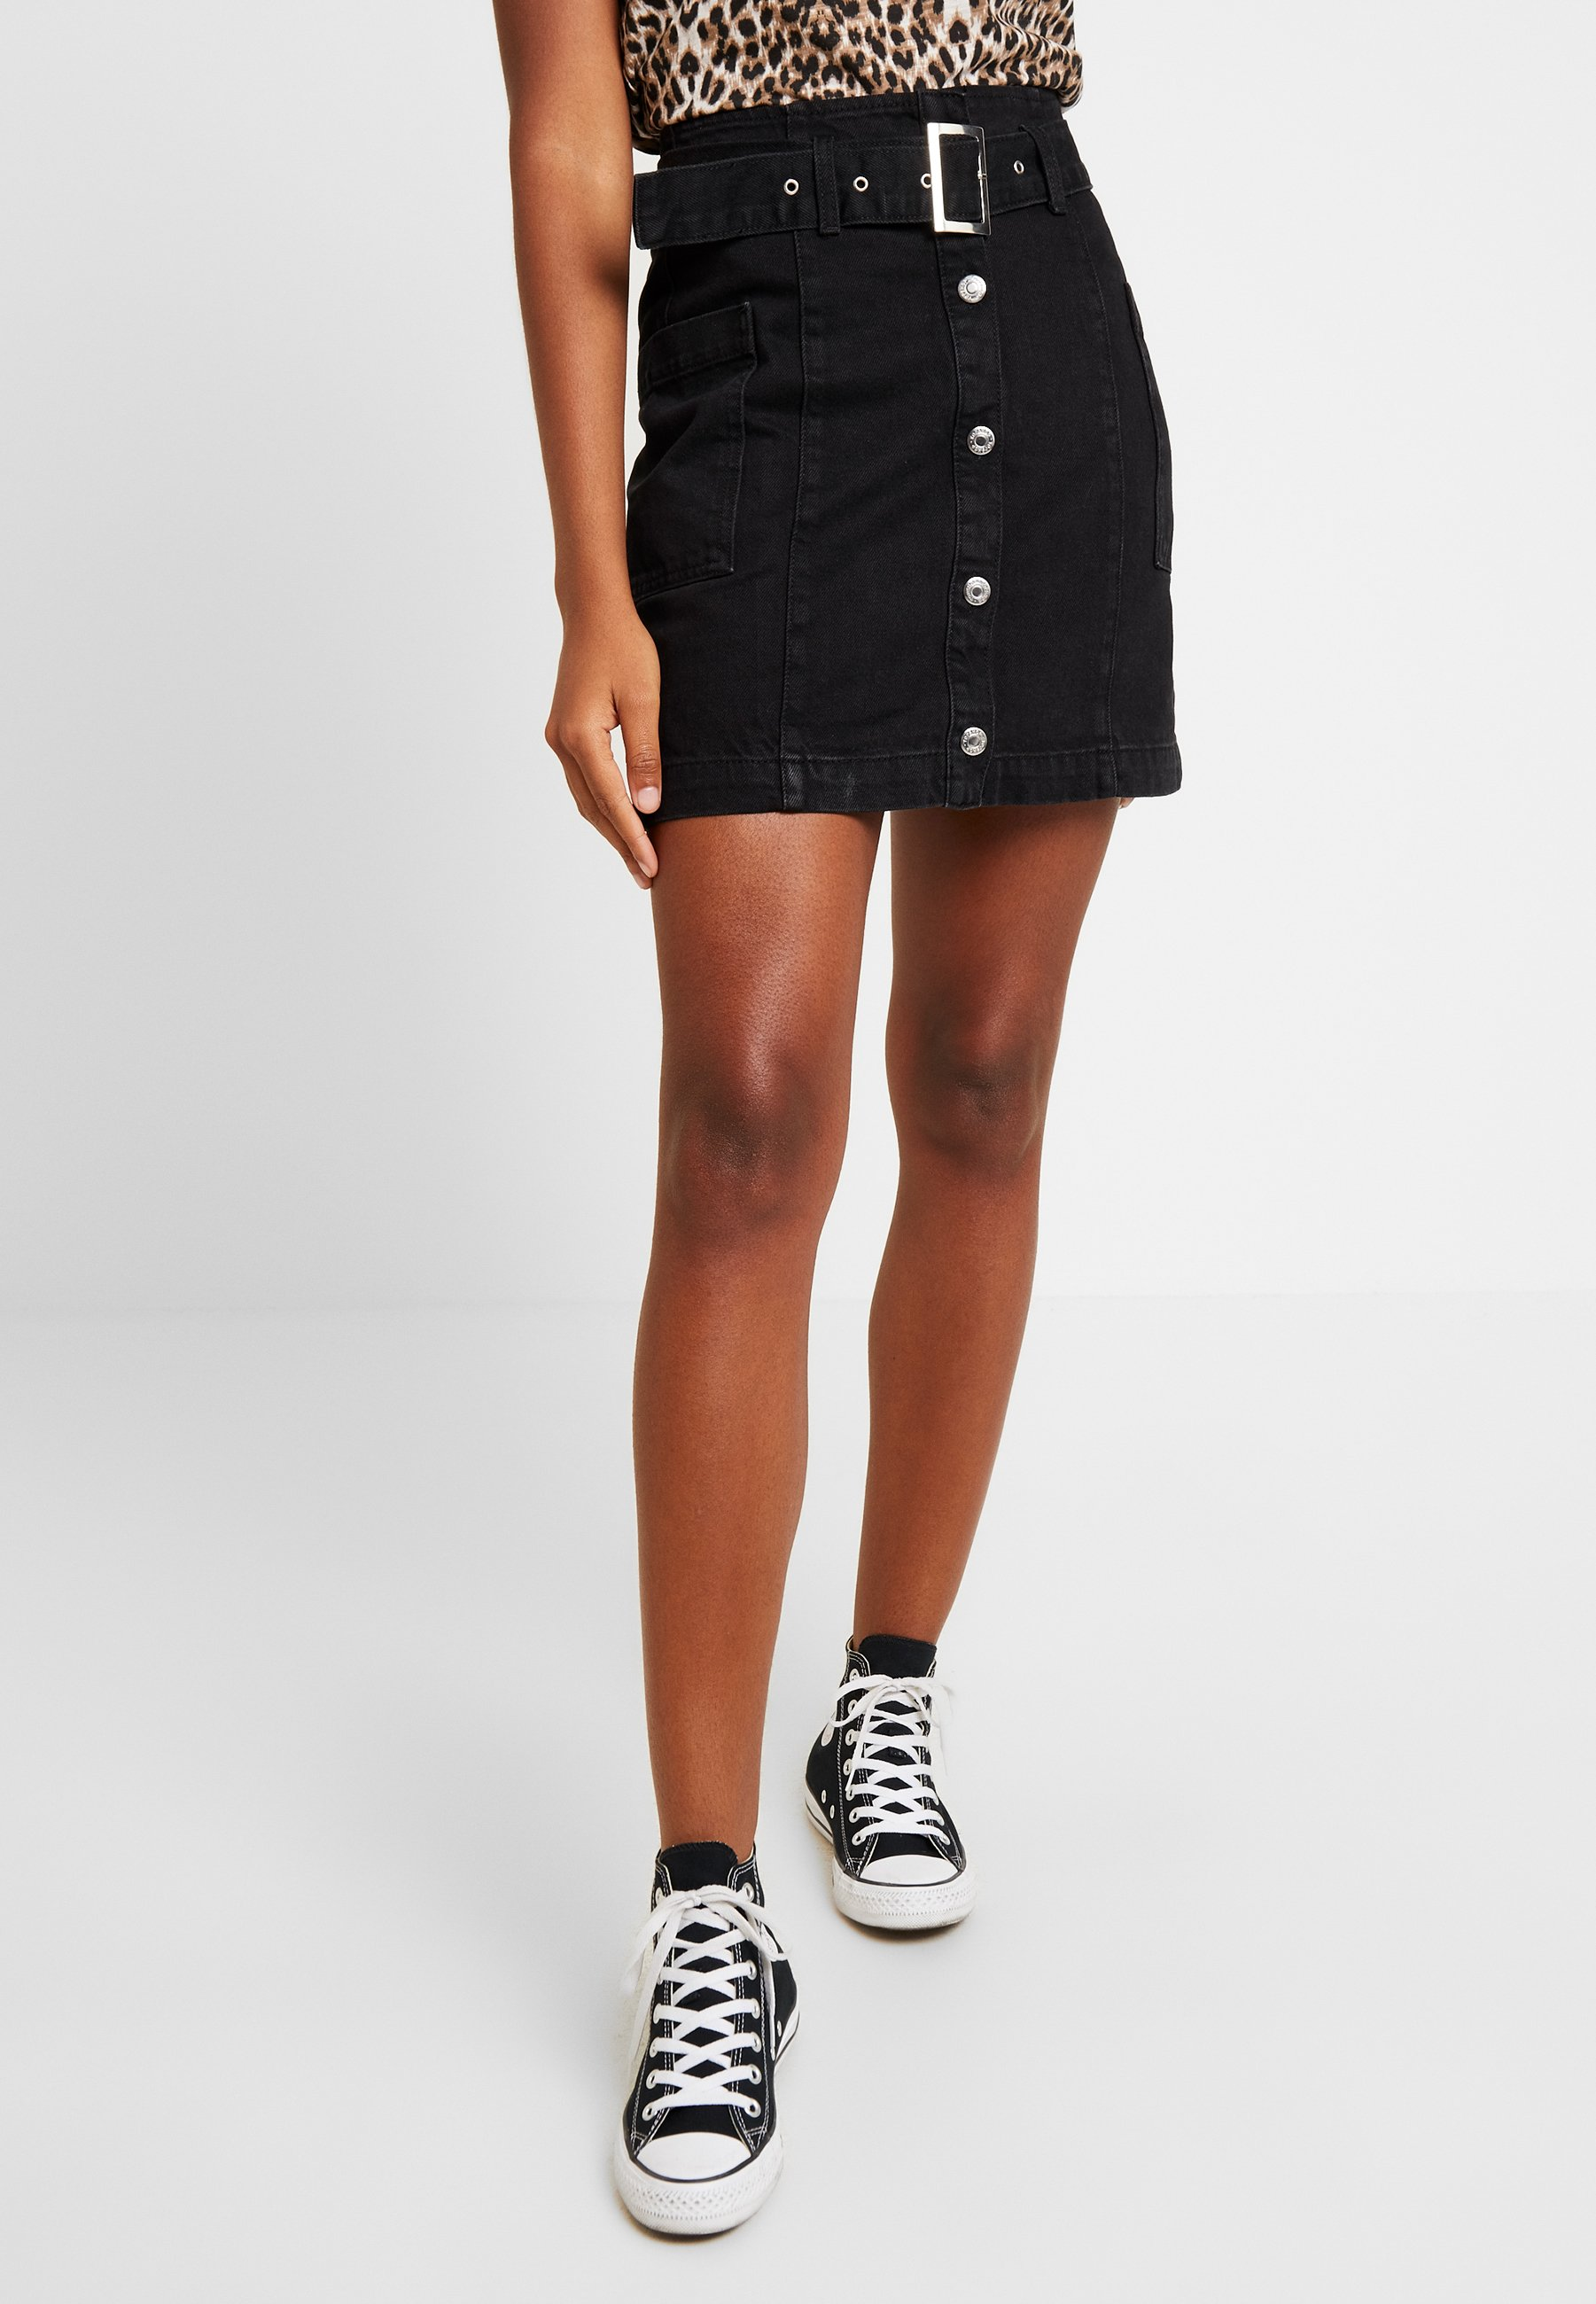 ThroughJupe Black Button Belted Utility Topshop Trapèze rQhdts